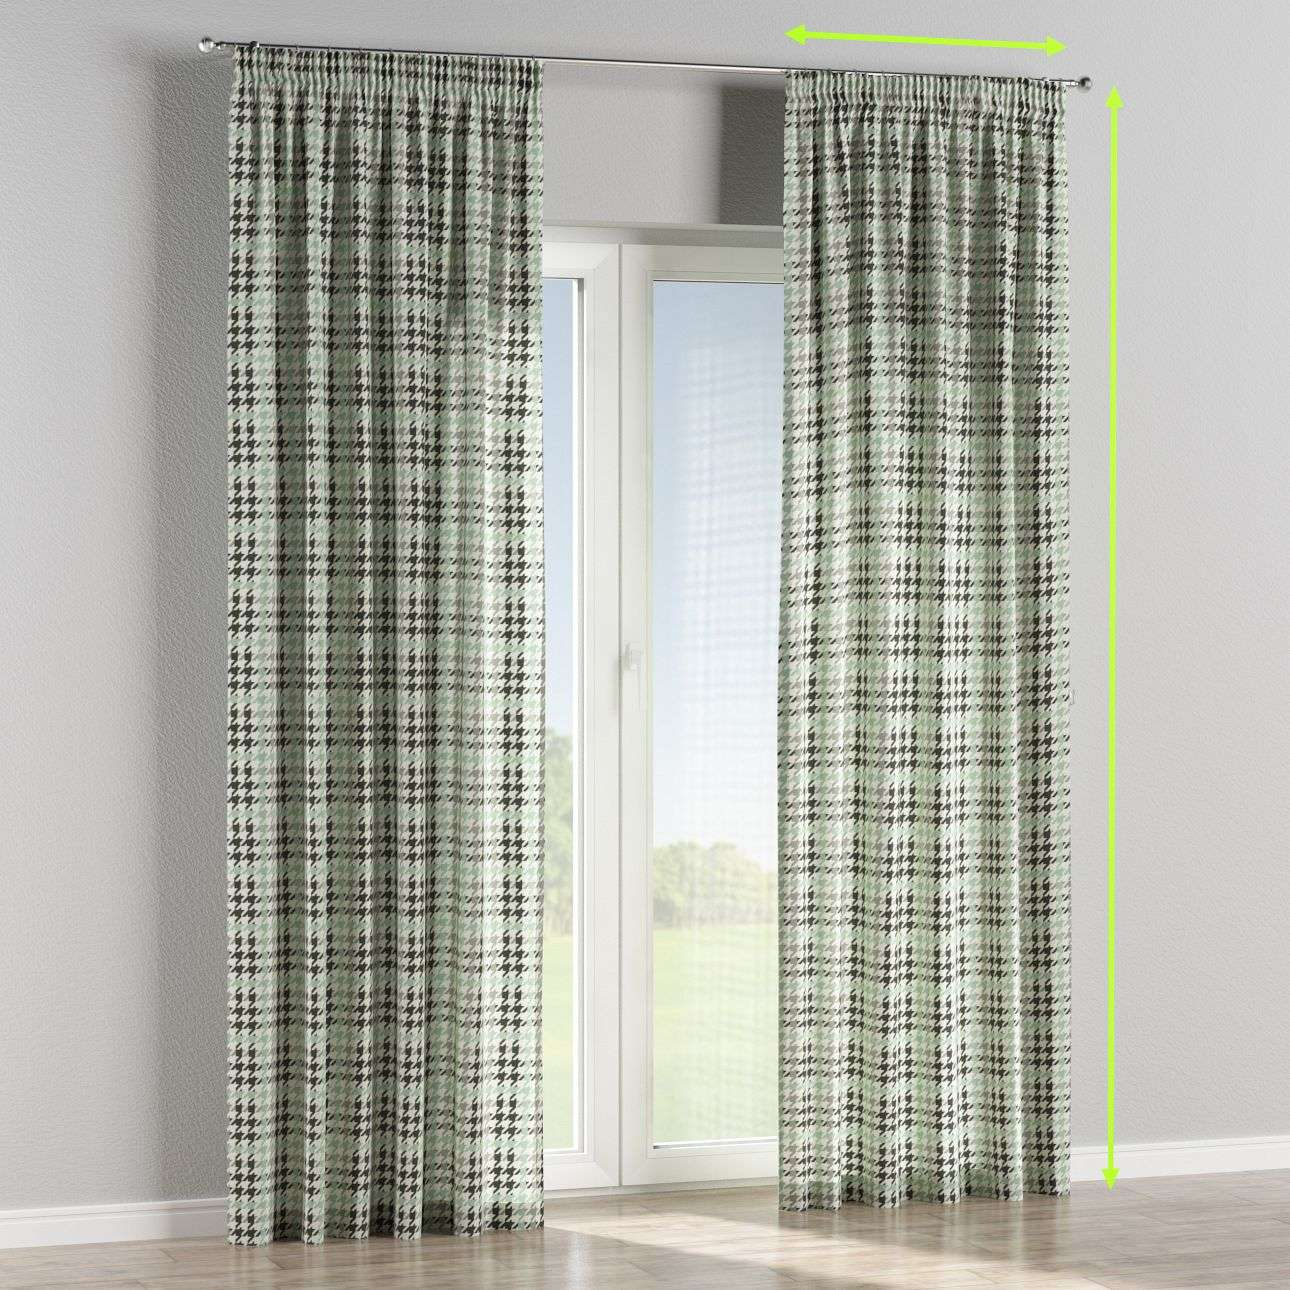 Pencil pleat lined curtains in collection Brooklyn, fabric: 137-77